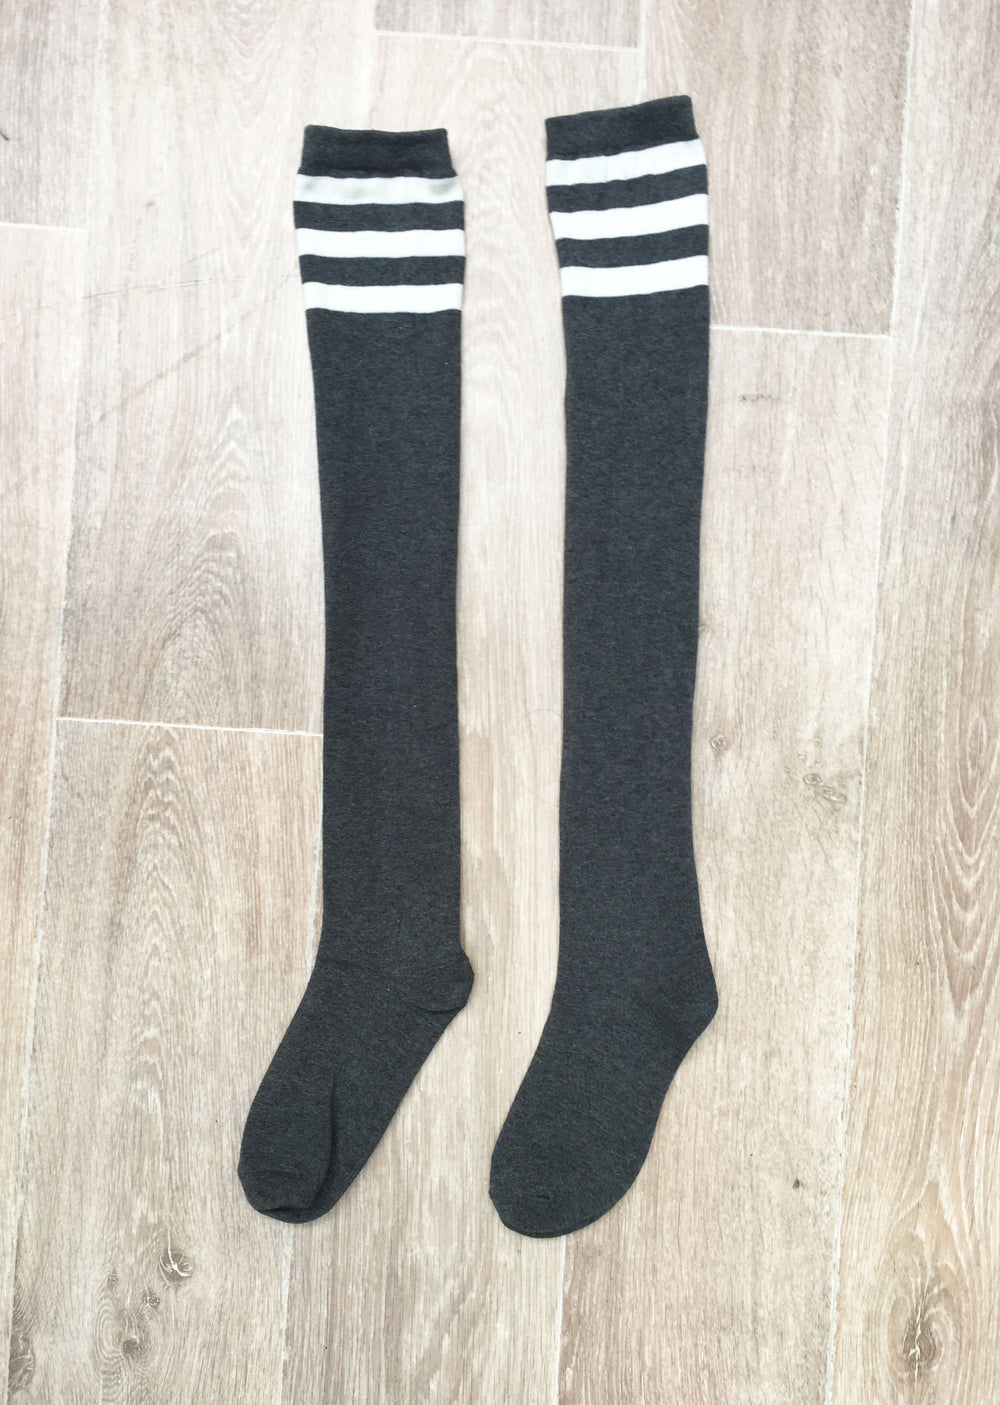 Thigh High Socks - Charcoal with White Stripes